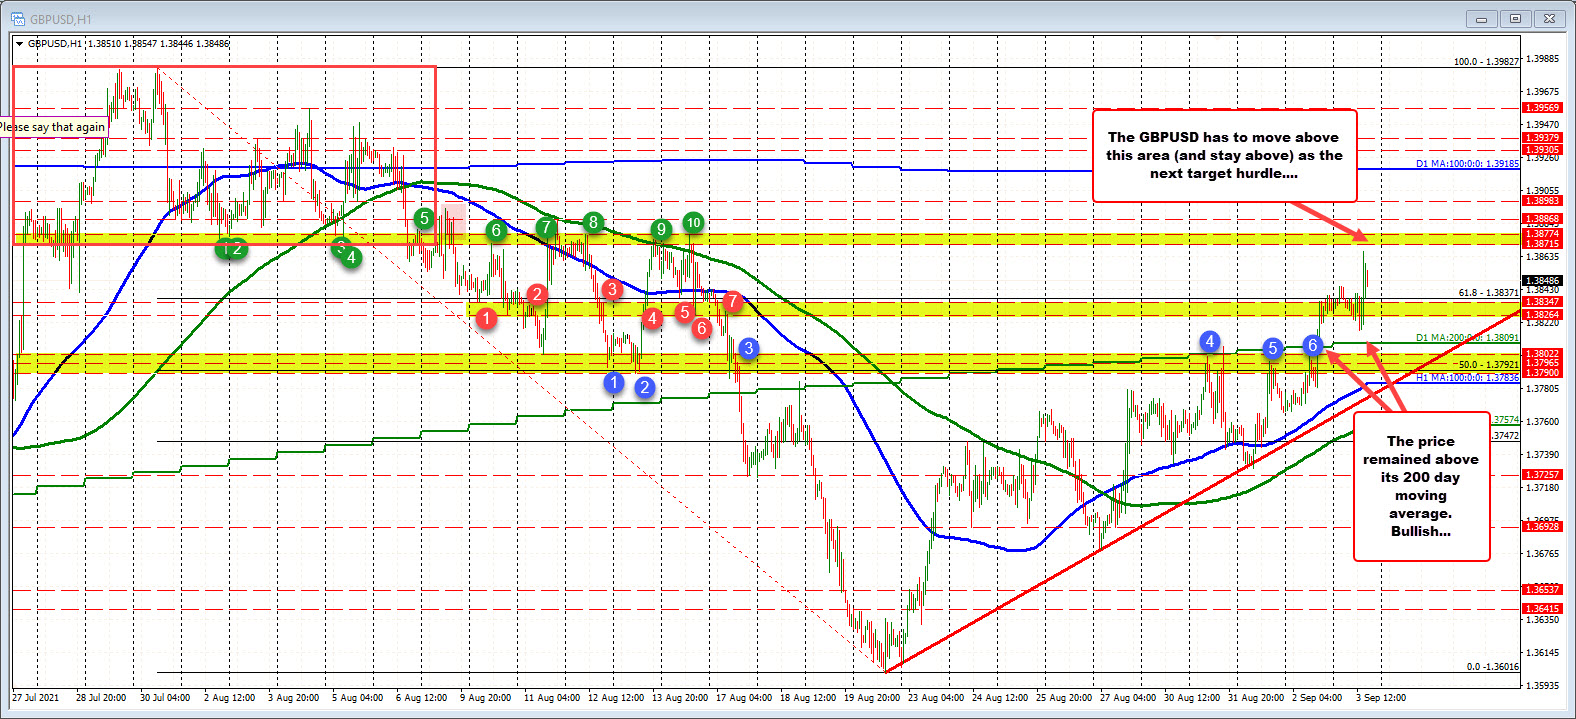 GBPUSD remains above its 200 day moving average